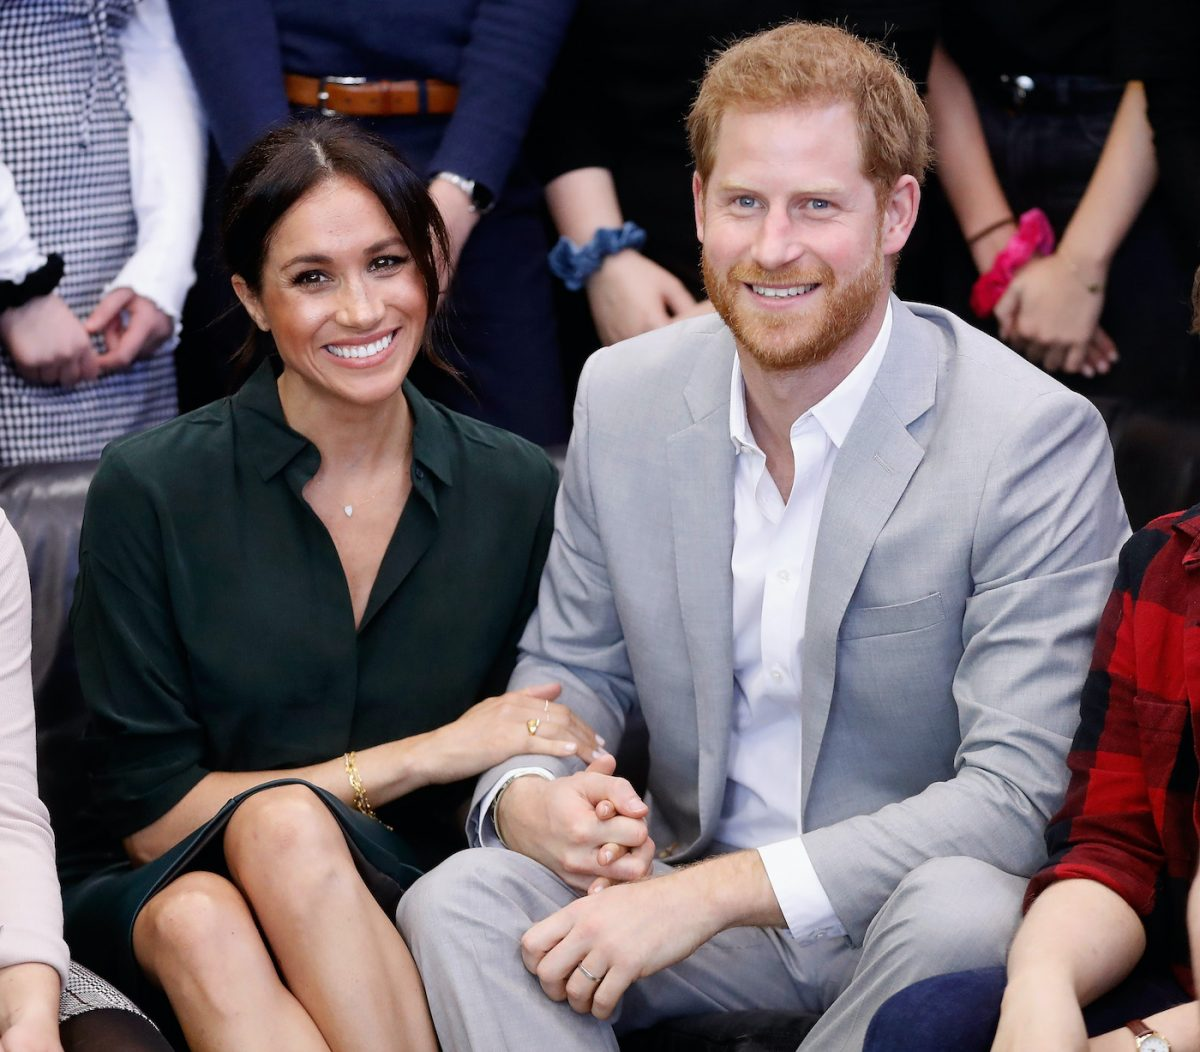 Meghan Markle and Prince Harry visit a youth center in Sussex